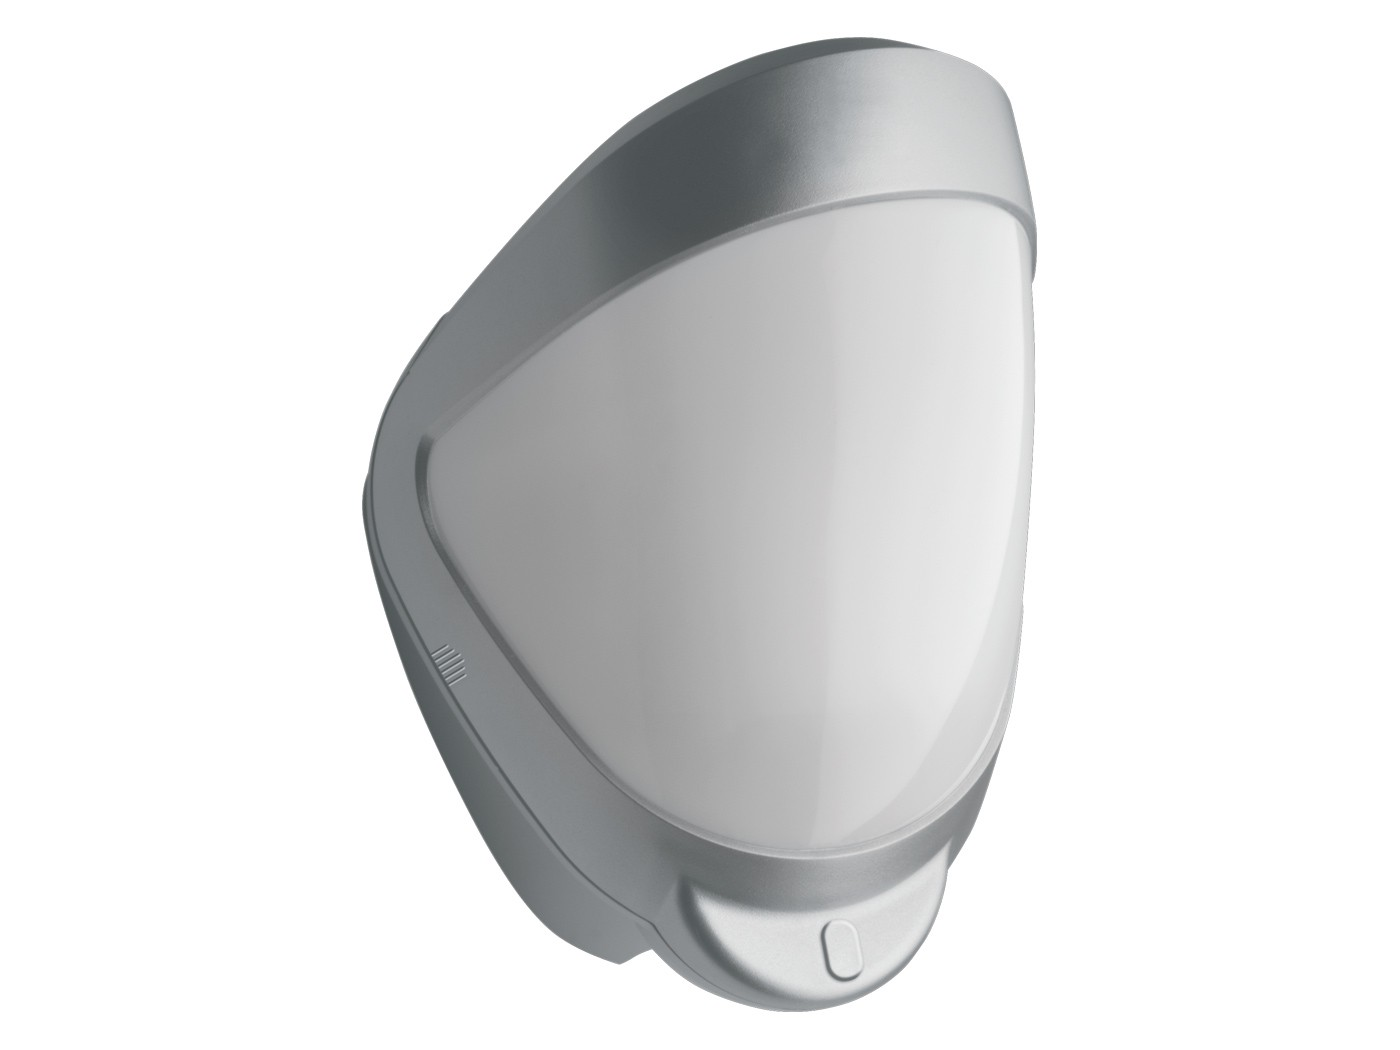 Wireless Home Security Devices